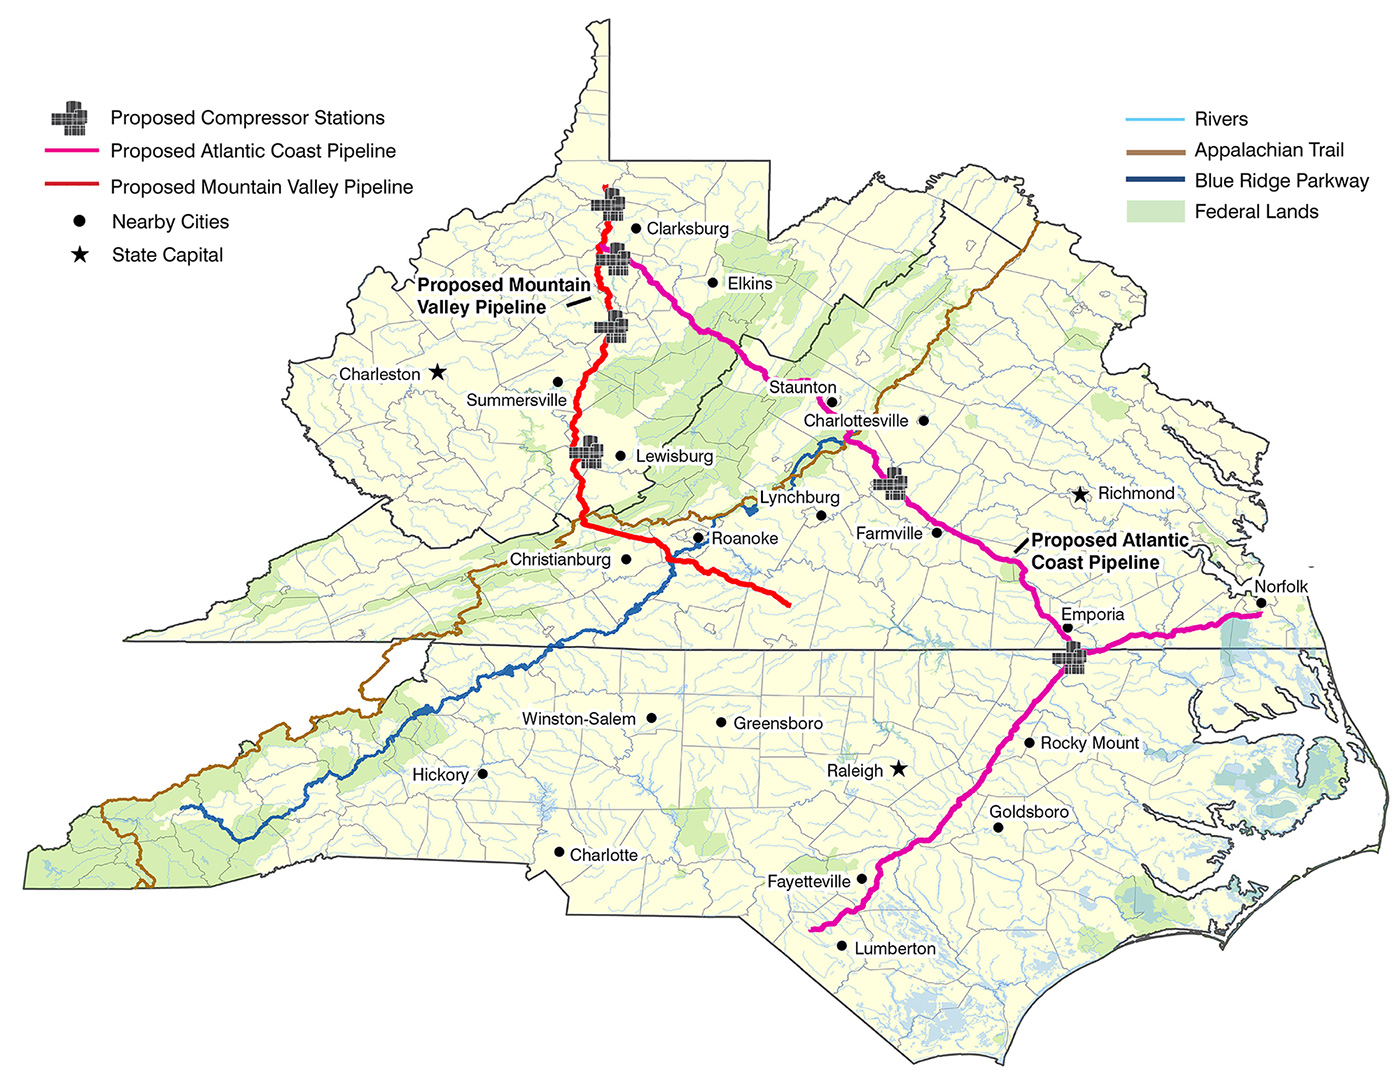 A map showing the routes of the proposed Atlantic Coast and Mountain Valley pipelines, including the rivers, Blue Ridge Parkway and Appalachian Trail which would all be impacted by the routes. For complete descriptions that meet with ADA compliance, please contact Lara Mack at lara@appvoices.org